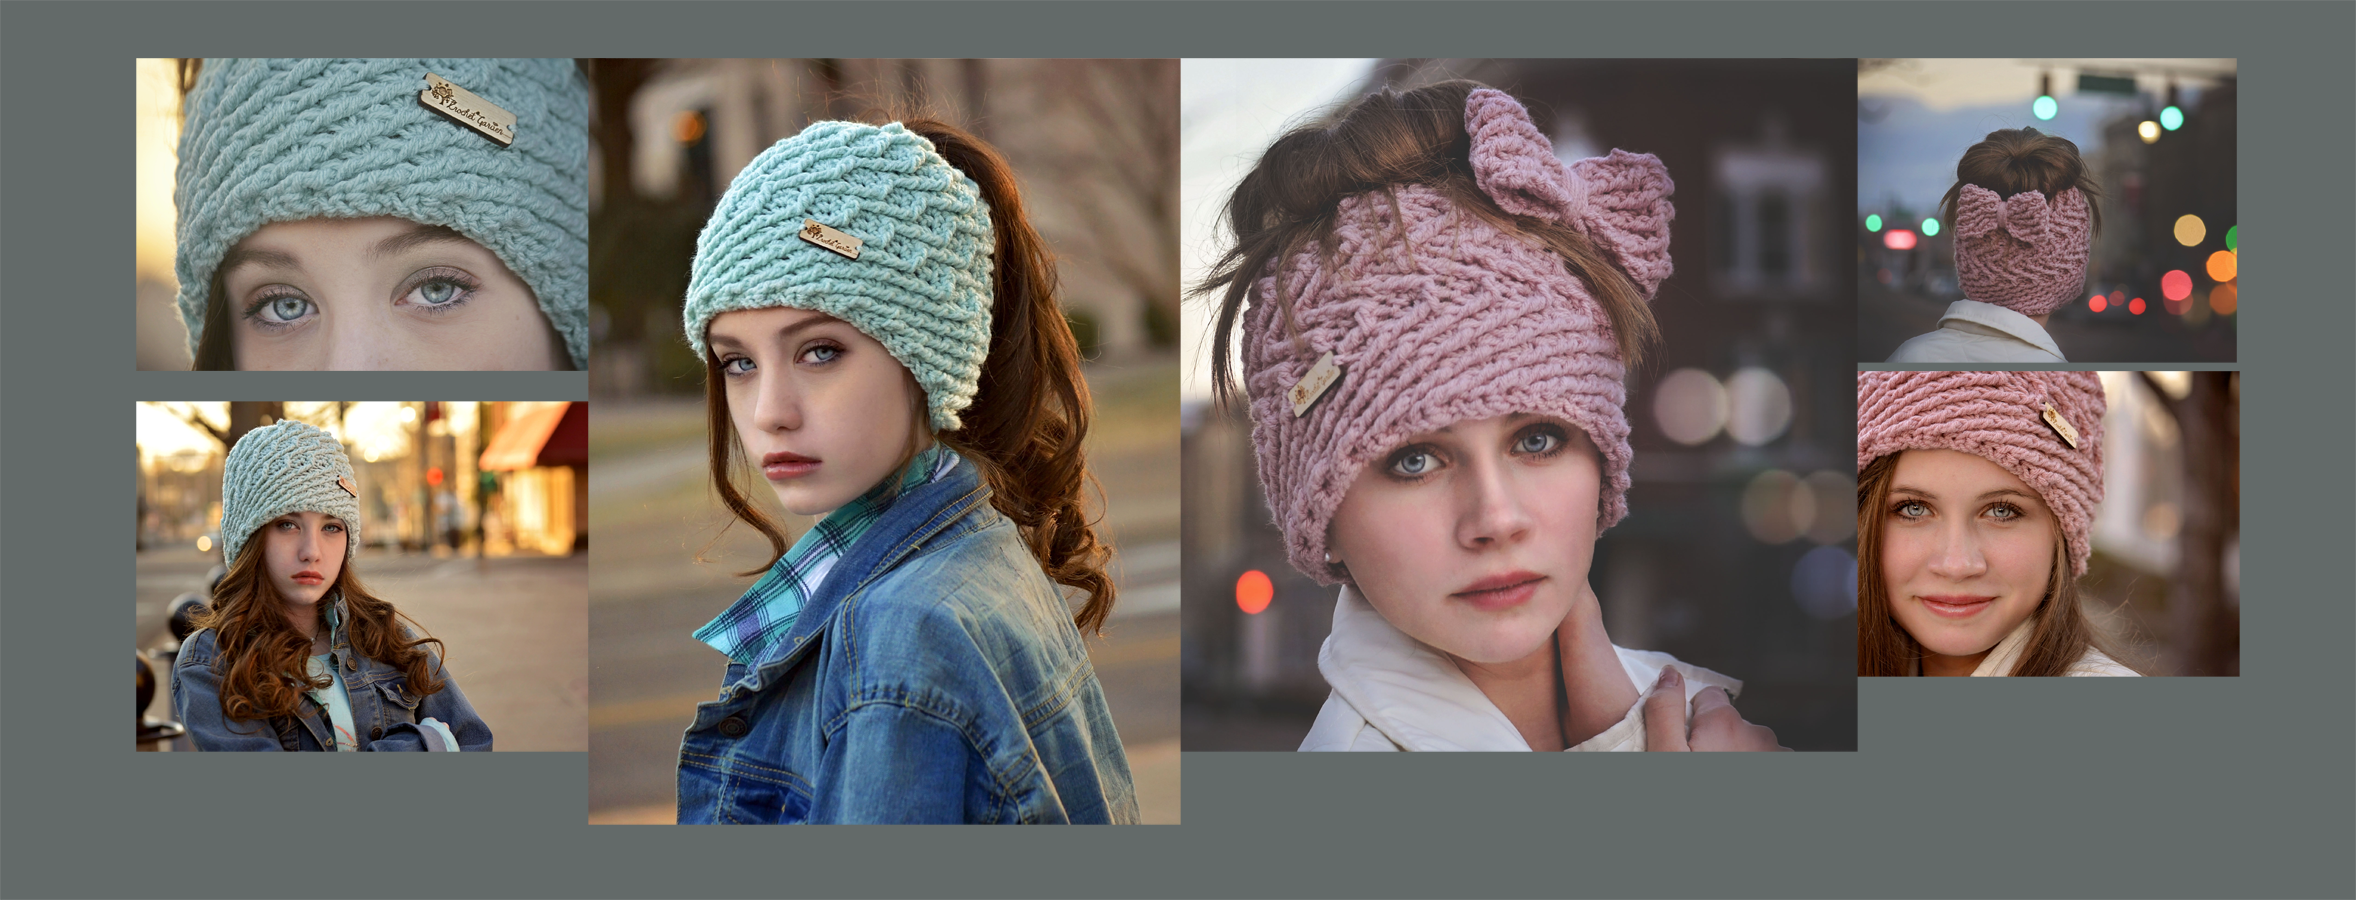 Summer And Winter Solsctice Messy Bun Hats